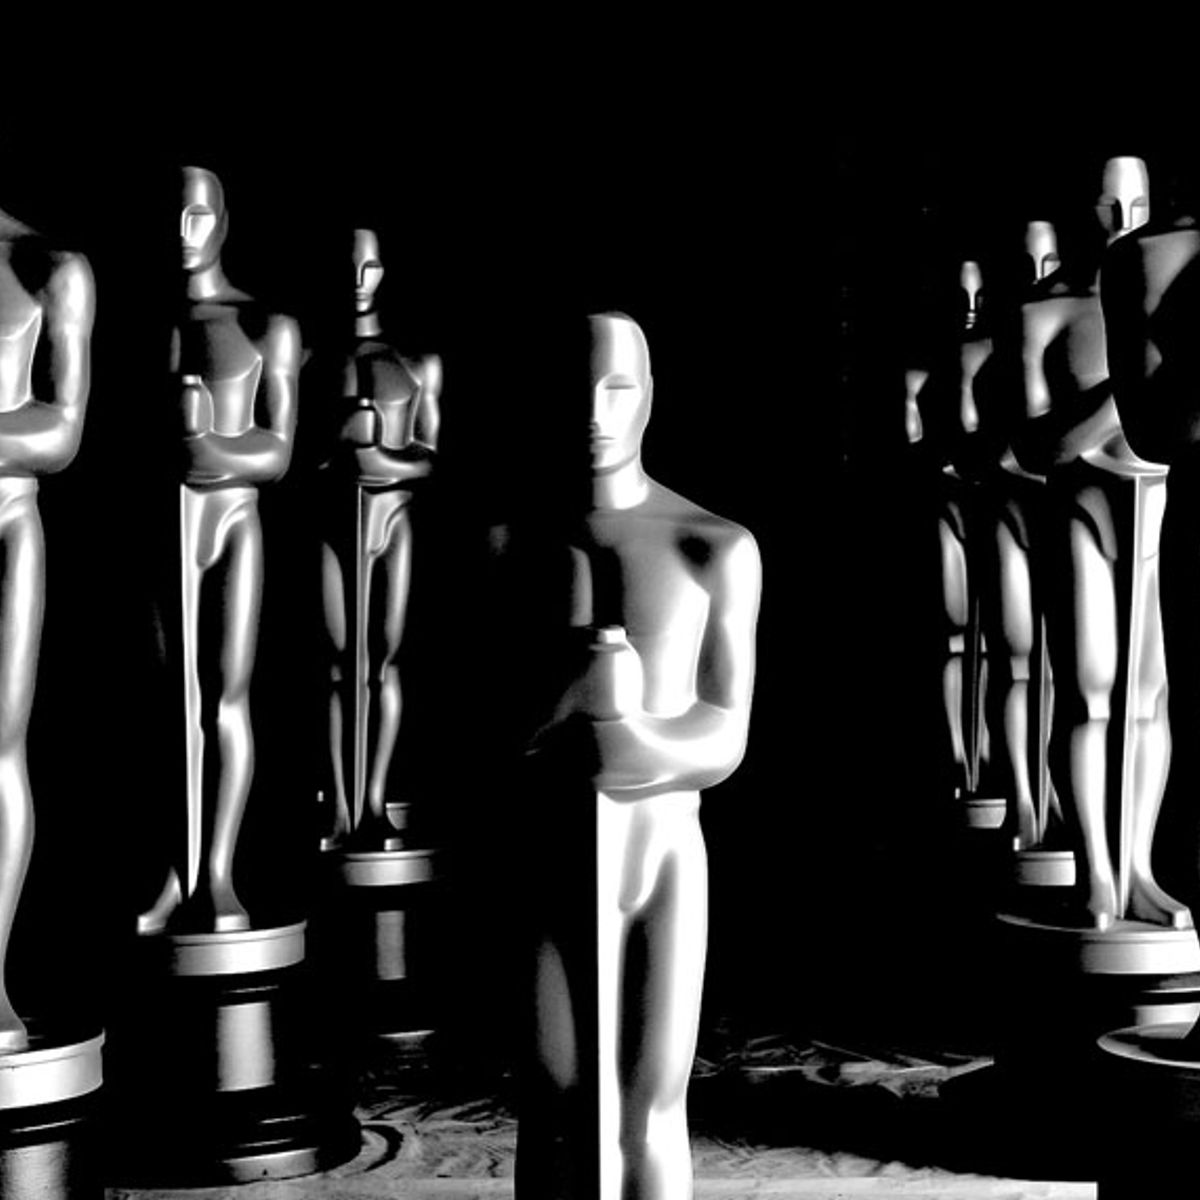 Oscars still so white? Only one actor of color was nominated by the Academy in 2020